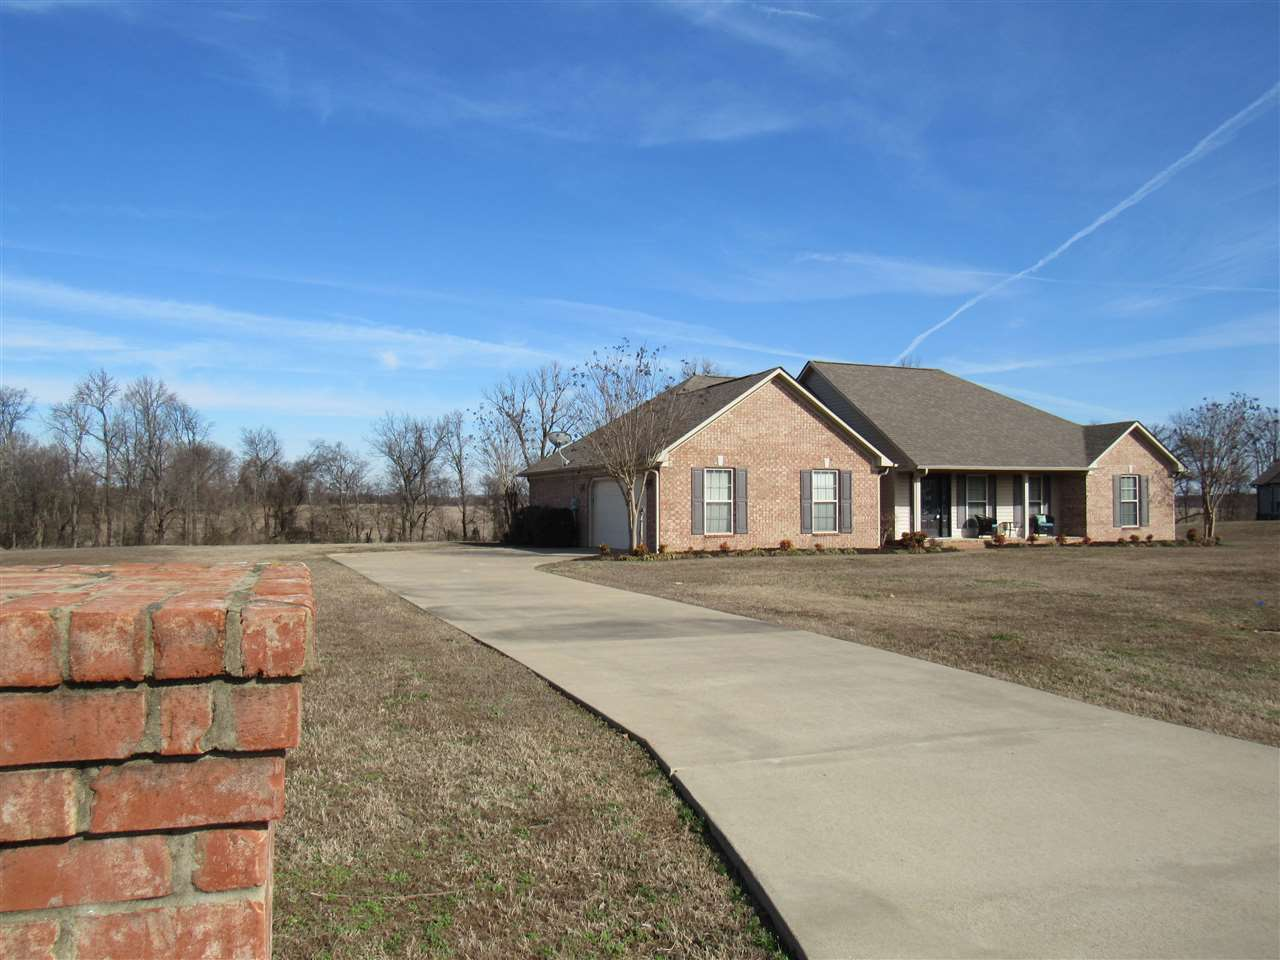 114 Hillside Cv,Dyersburg,Tennessee 38024,3 Bedrooms Bedrooms,2 BathroomsBathrooms,Residential,114 Hillside Cv,186602